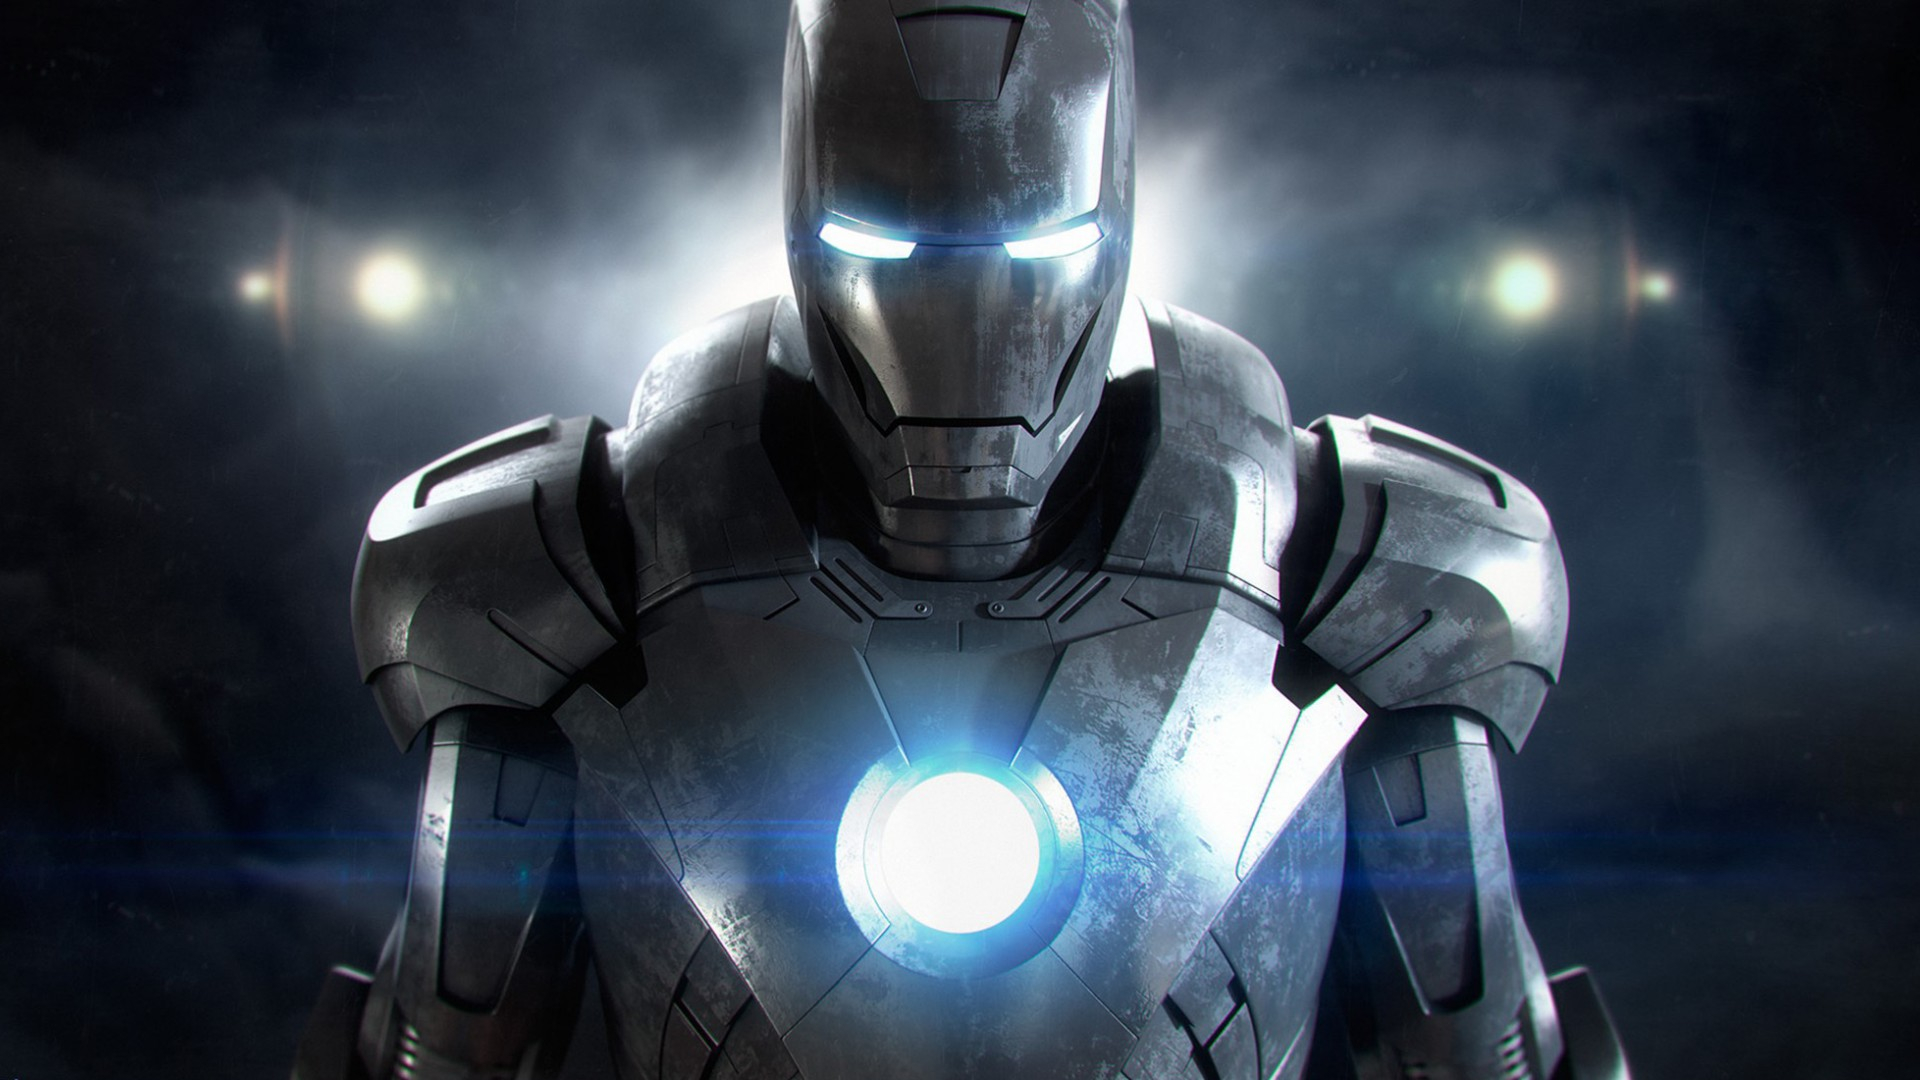 iron man wallpaper for iphone 6 plus